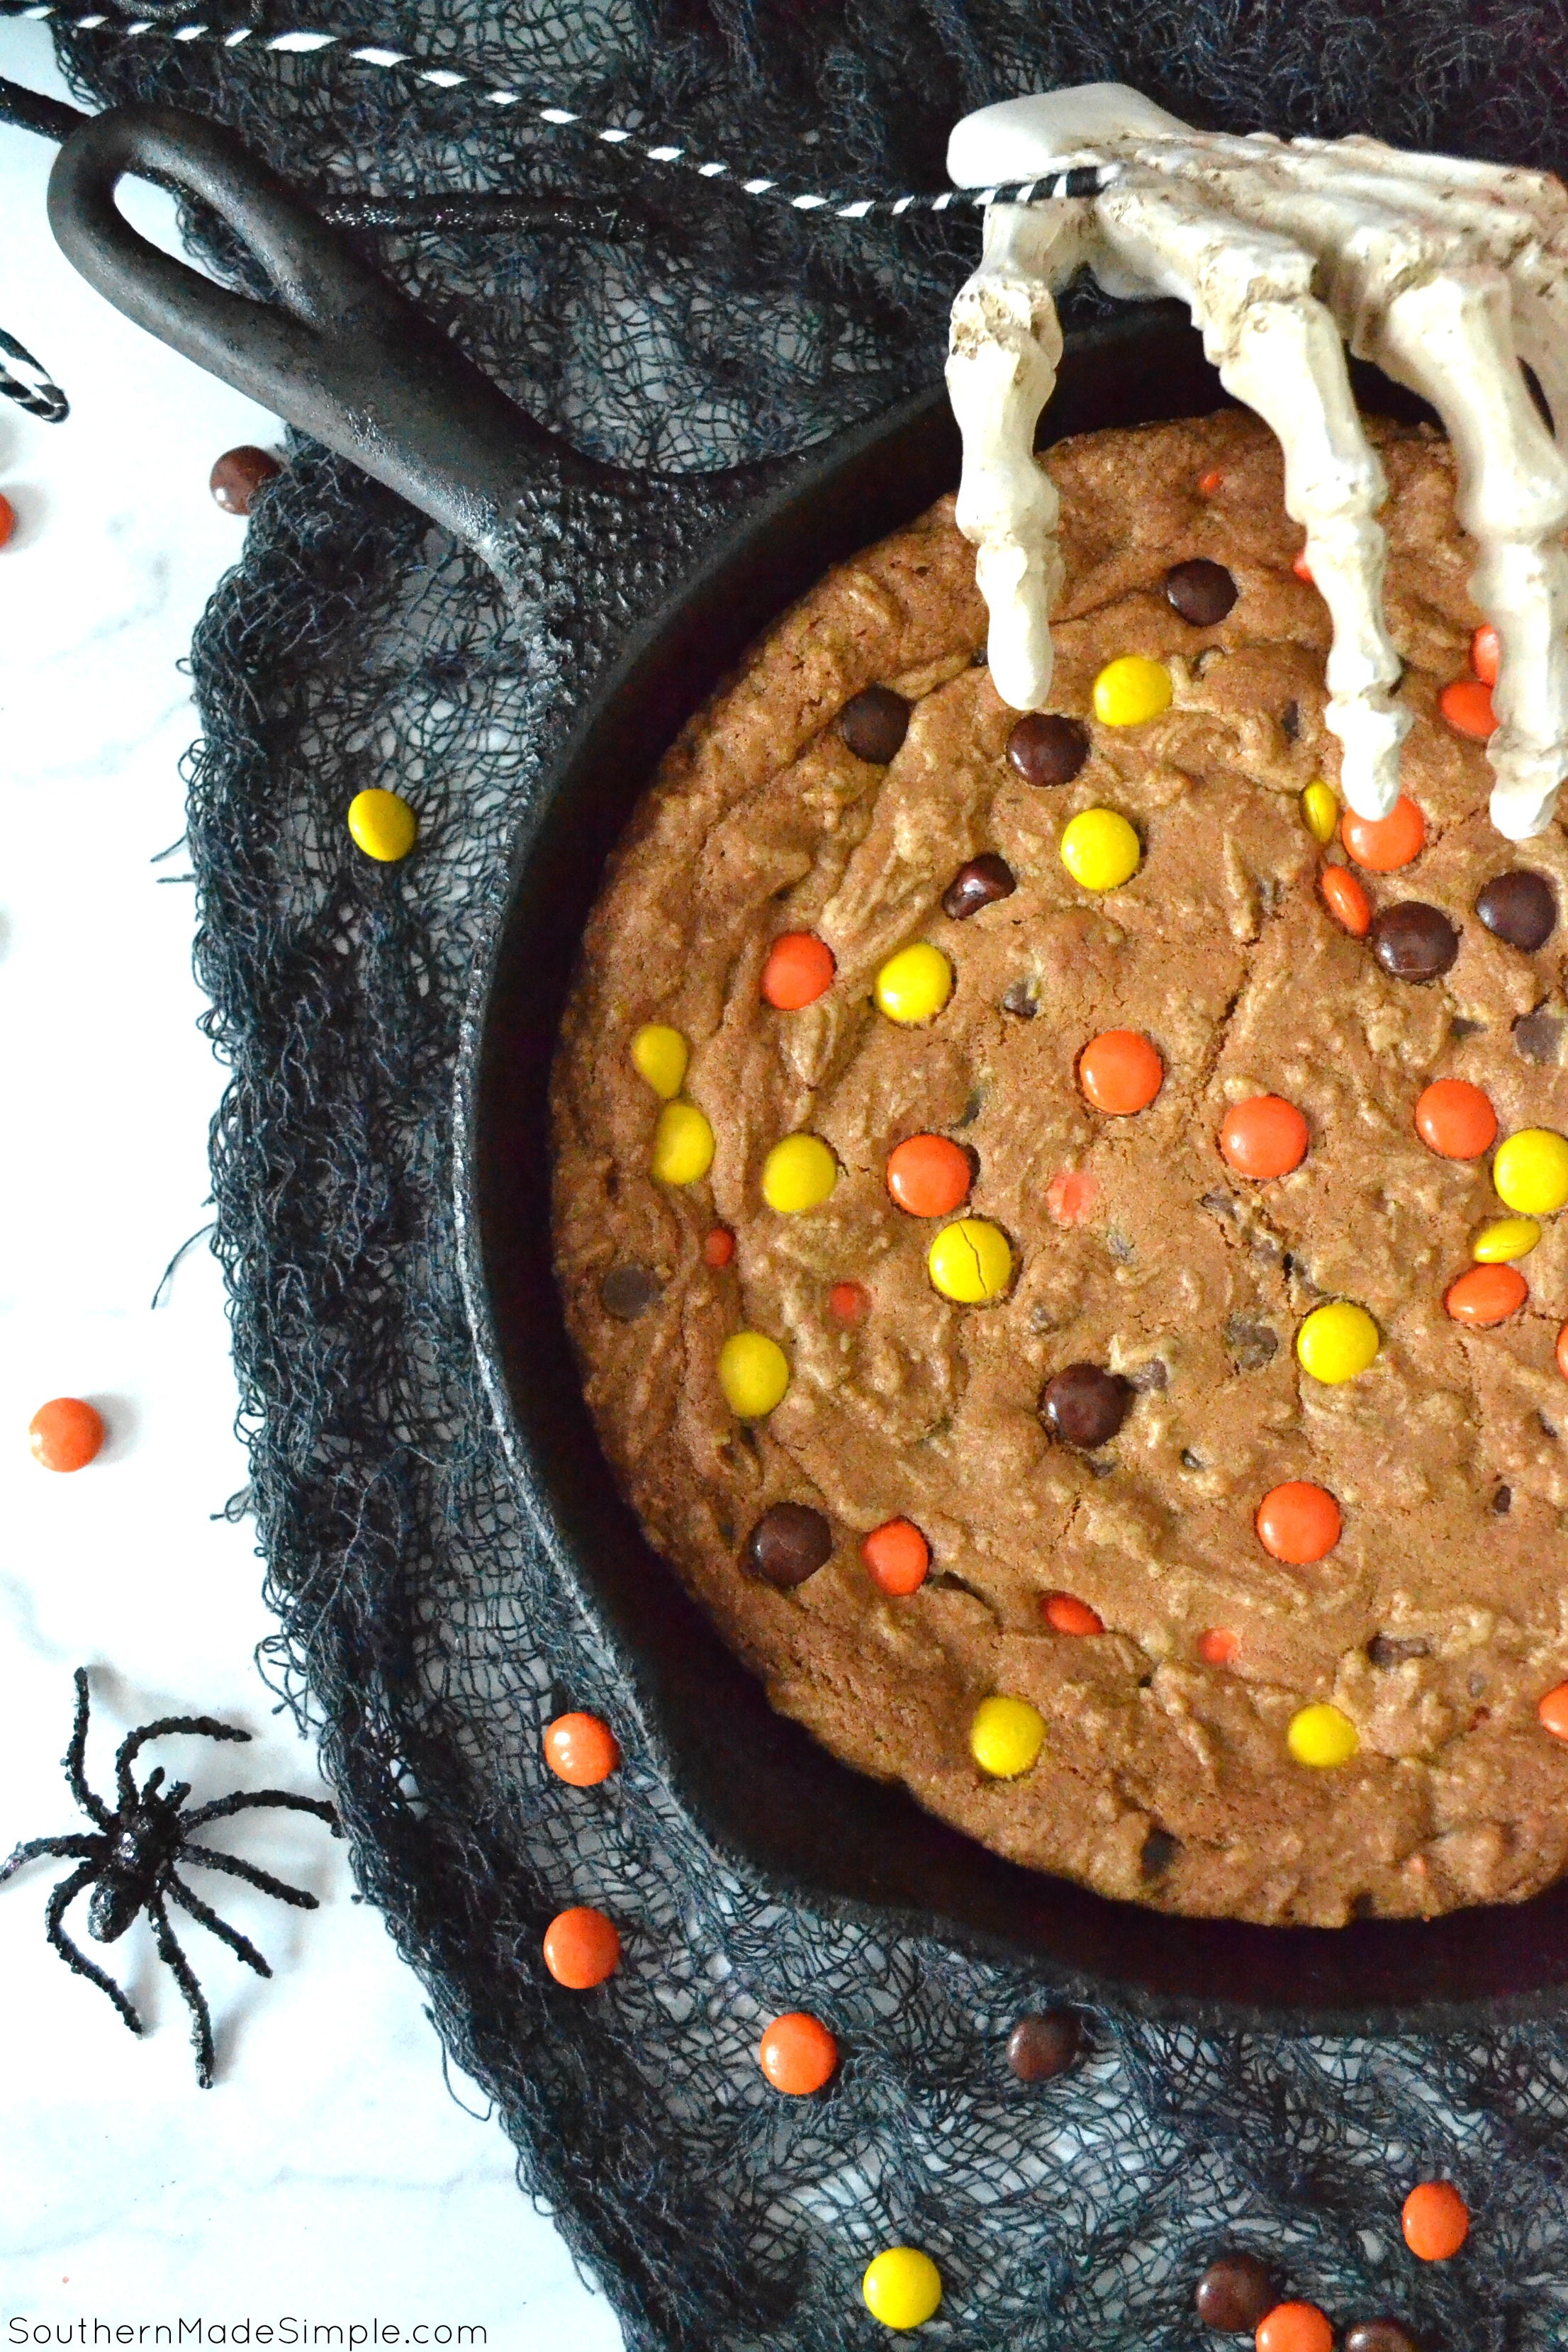 This Halloween Deep Dish Skillet Cookie is filled with chocolate chips, reese's pieces and is baked to perfection in a cast iron skillet! The only thing scary about this cookie is how GOOD it is! #halloweendessert #reesespieces #halloween